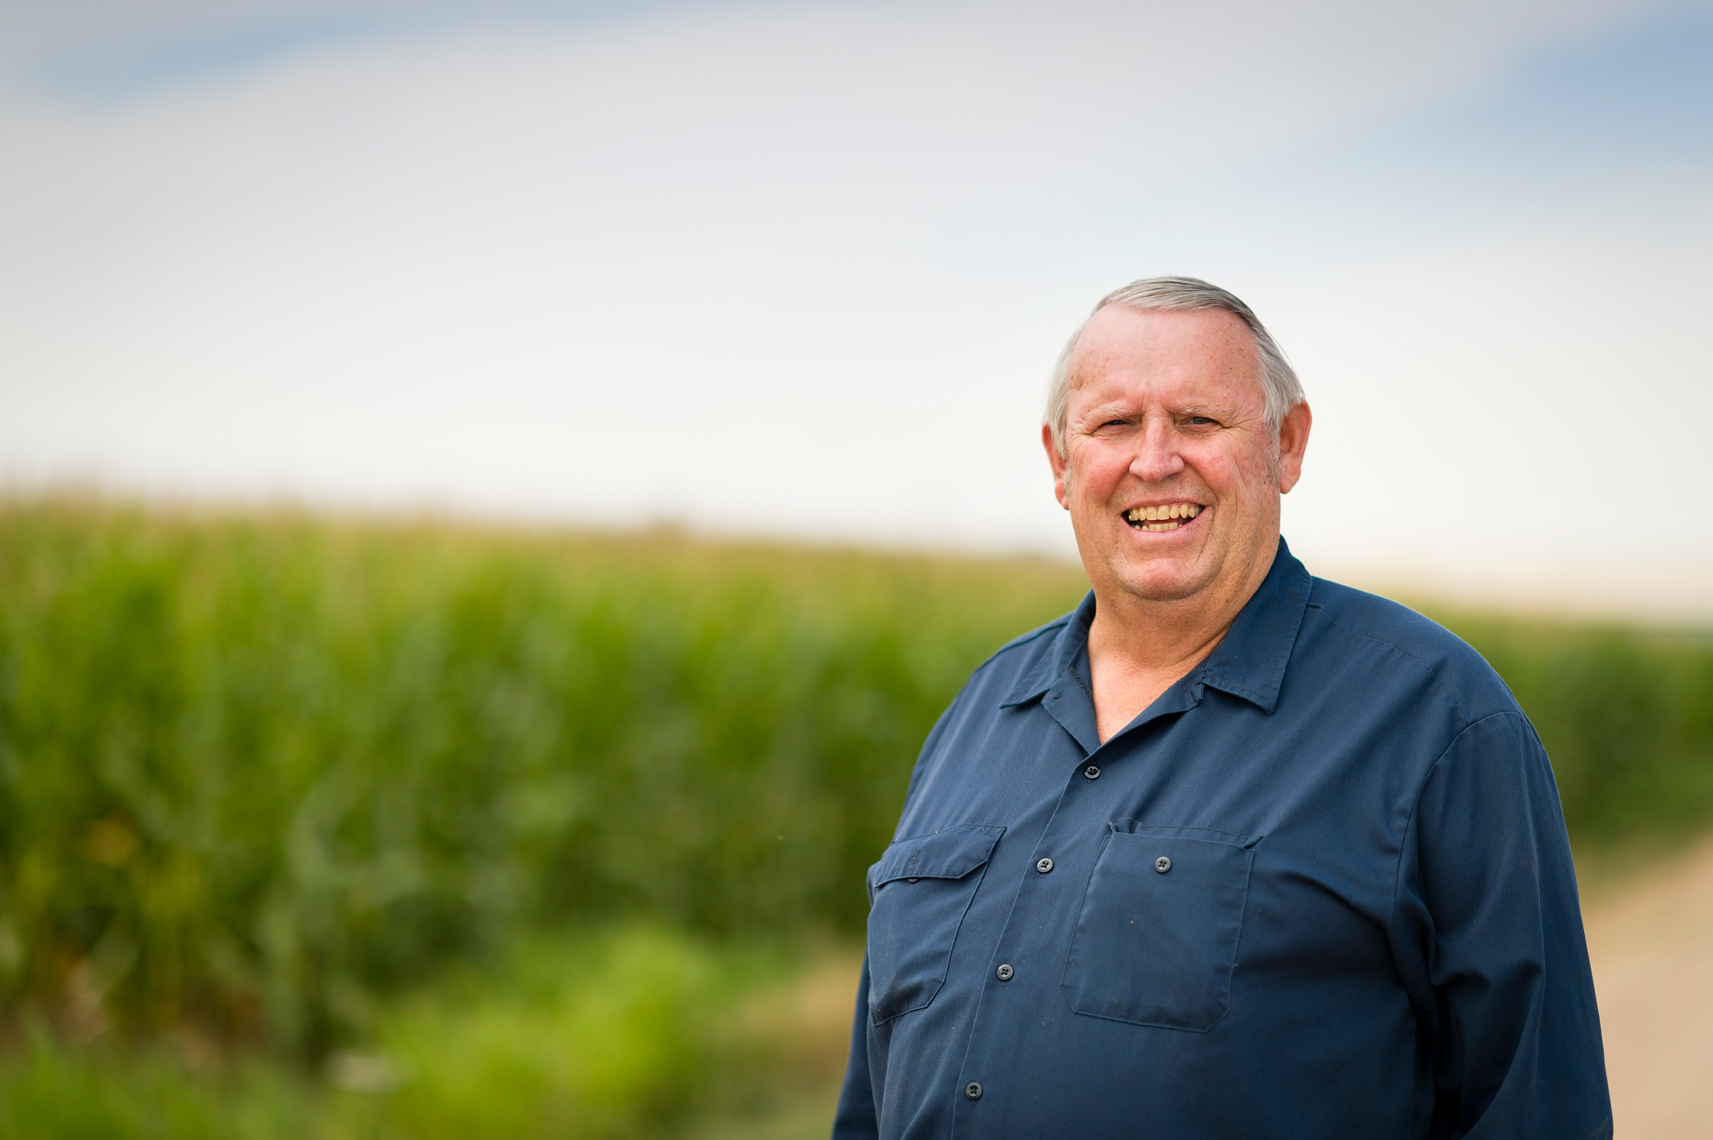 Steve Puppe Kansas City Agricultural Photographer